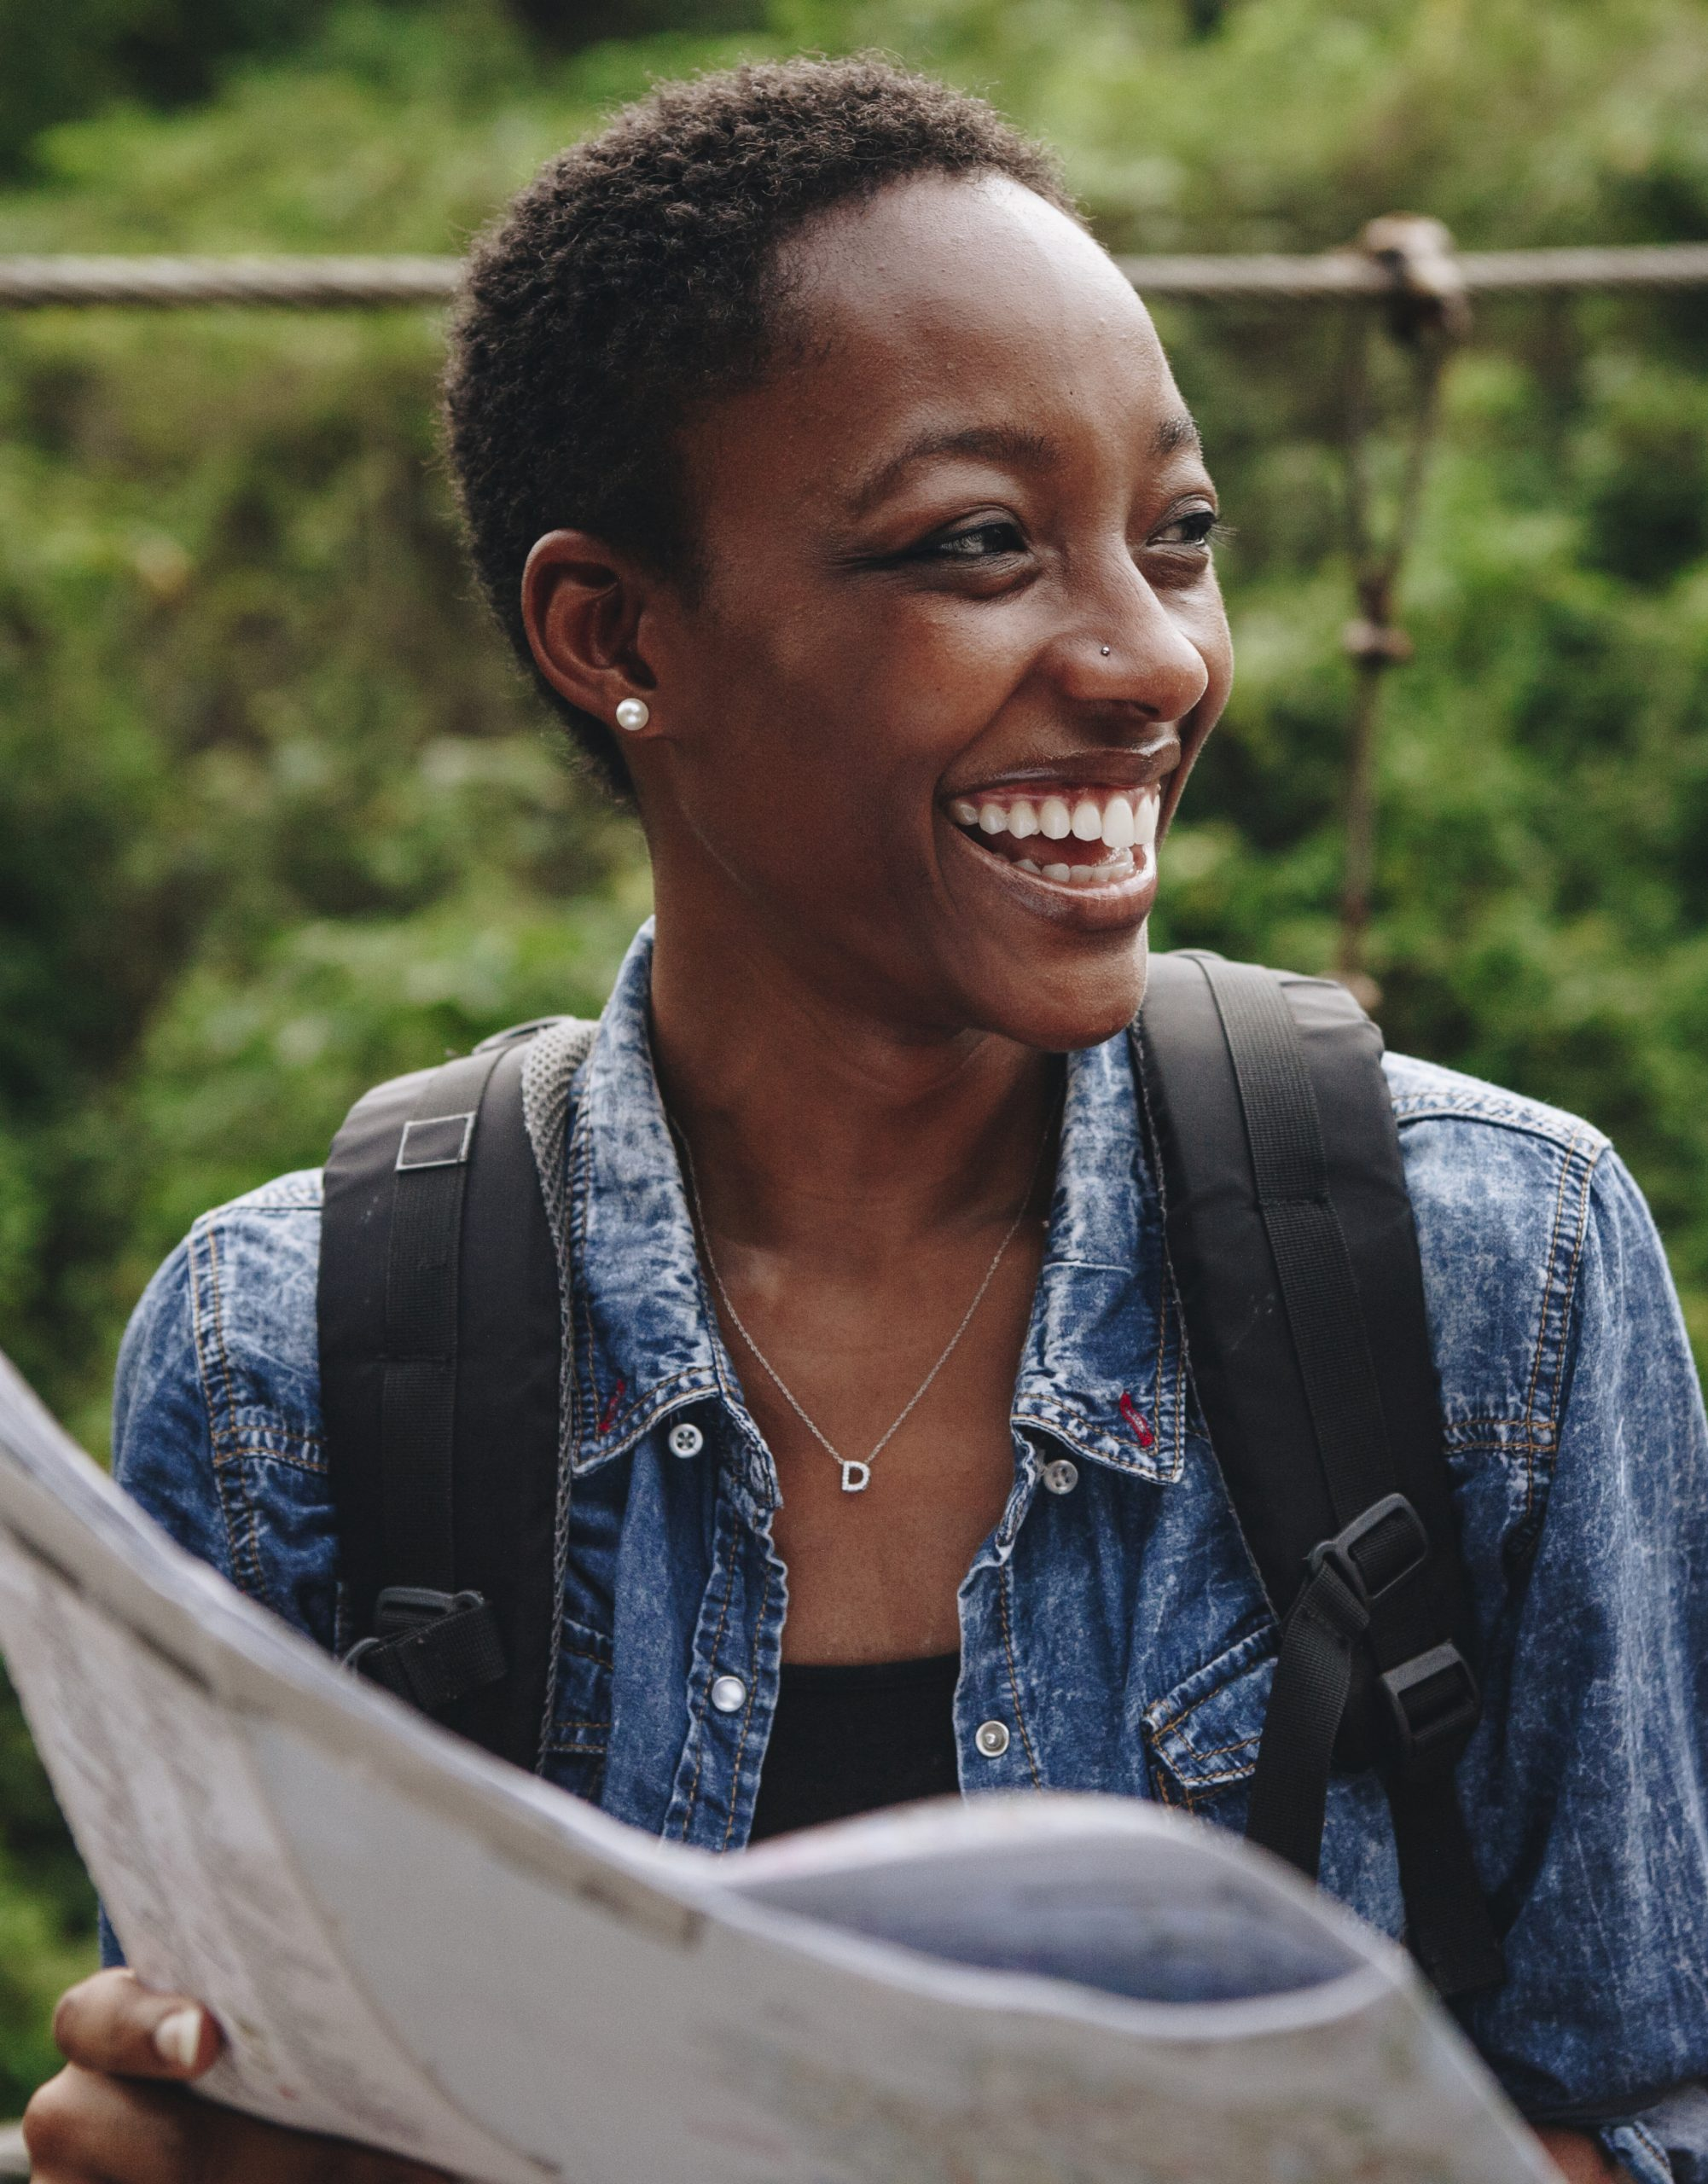 Happy smiling black woman navigating with a map on SelfishMe Travel